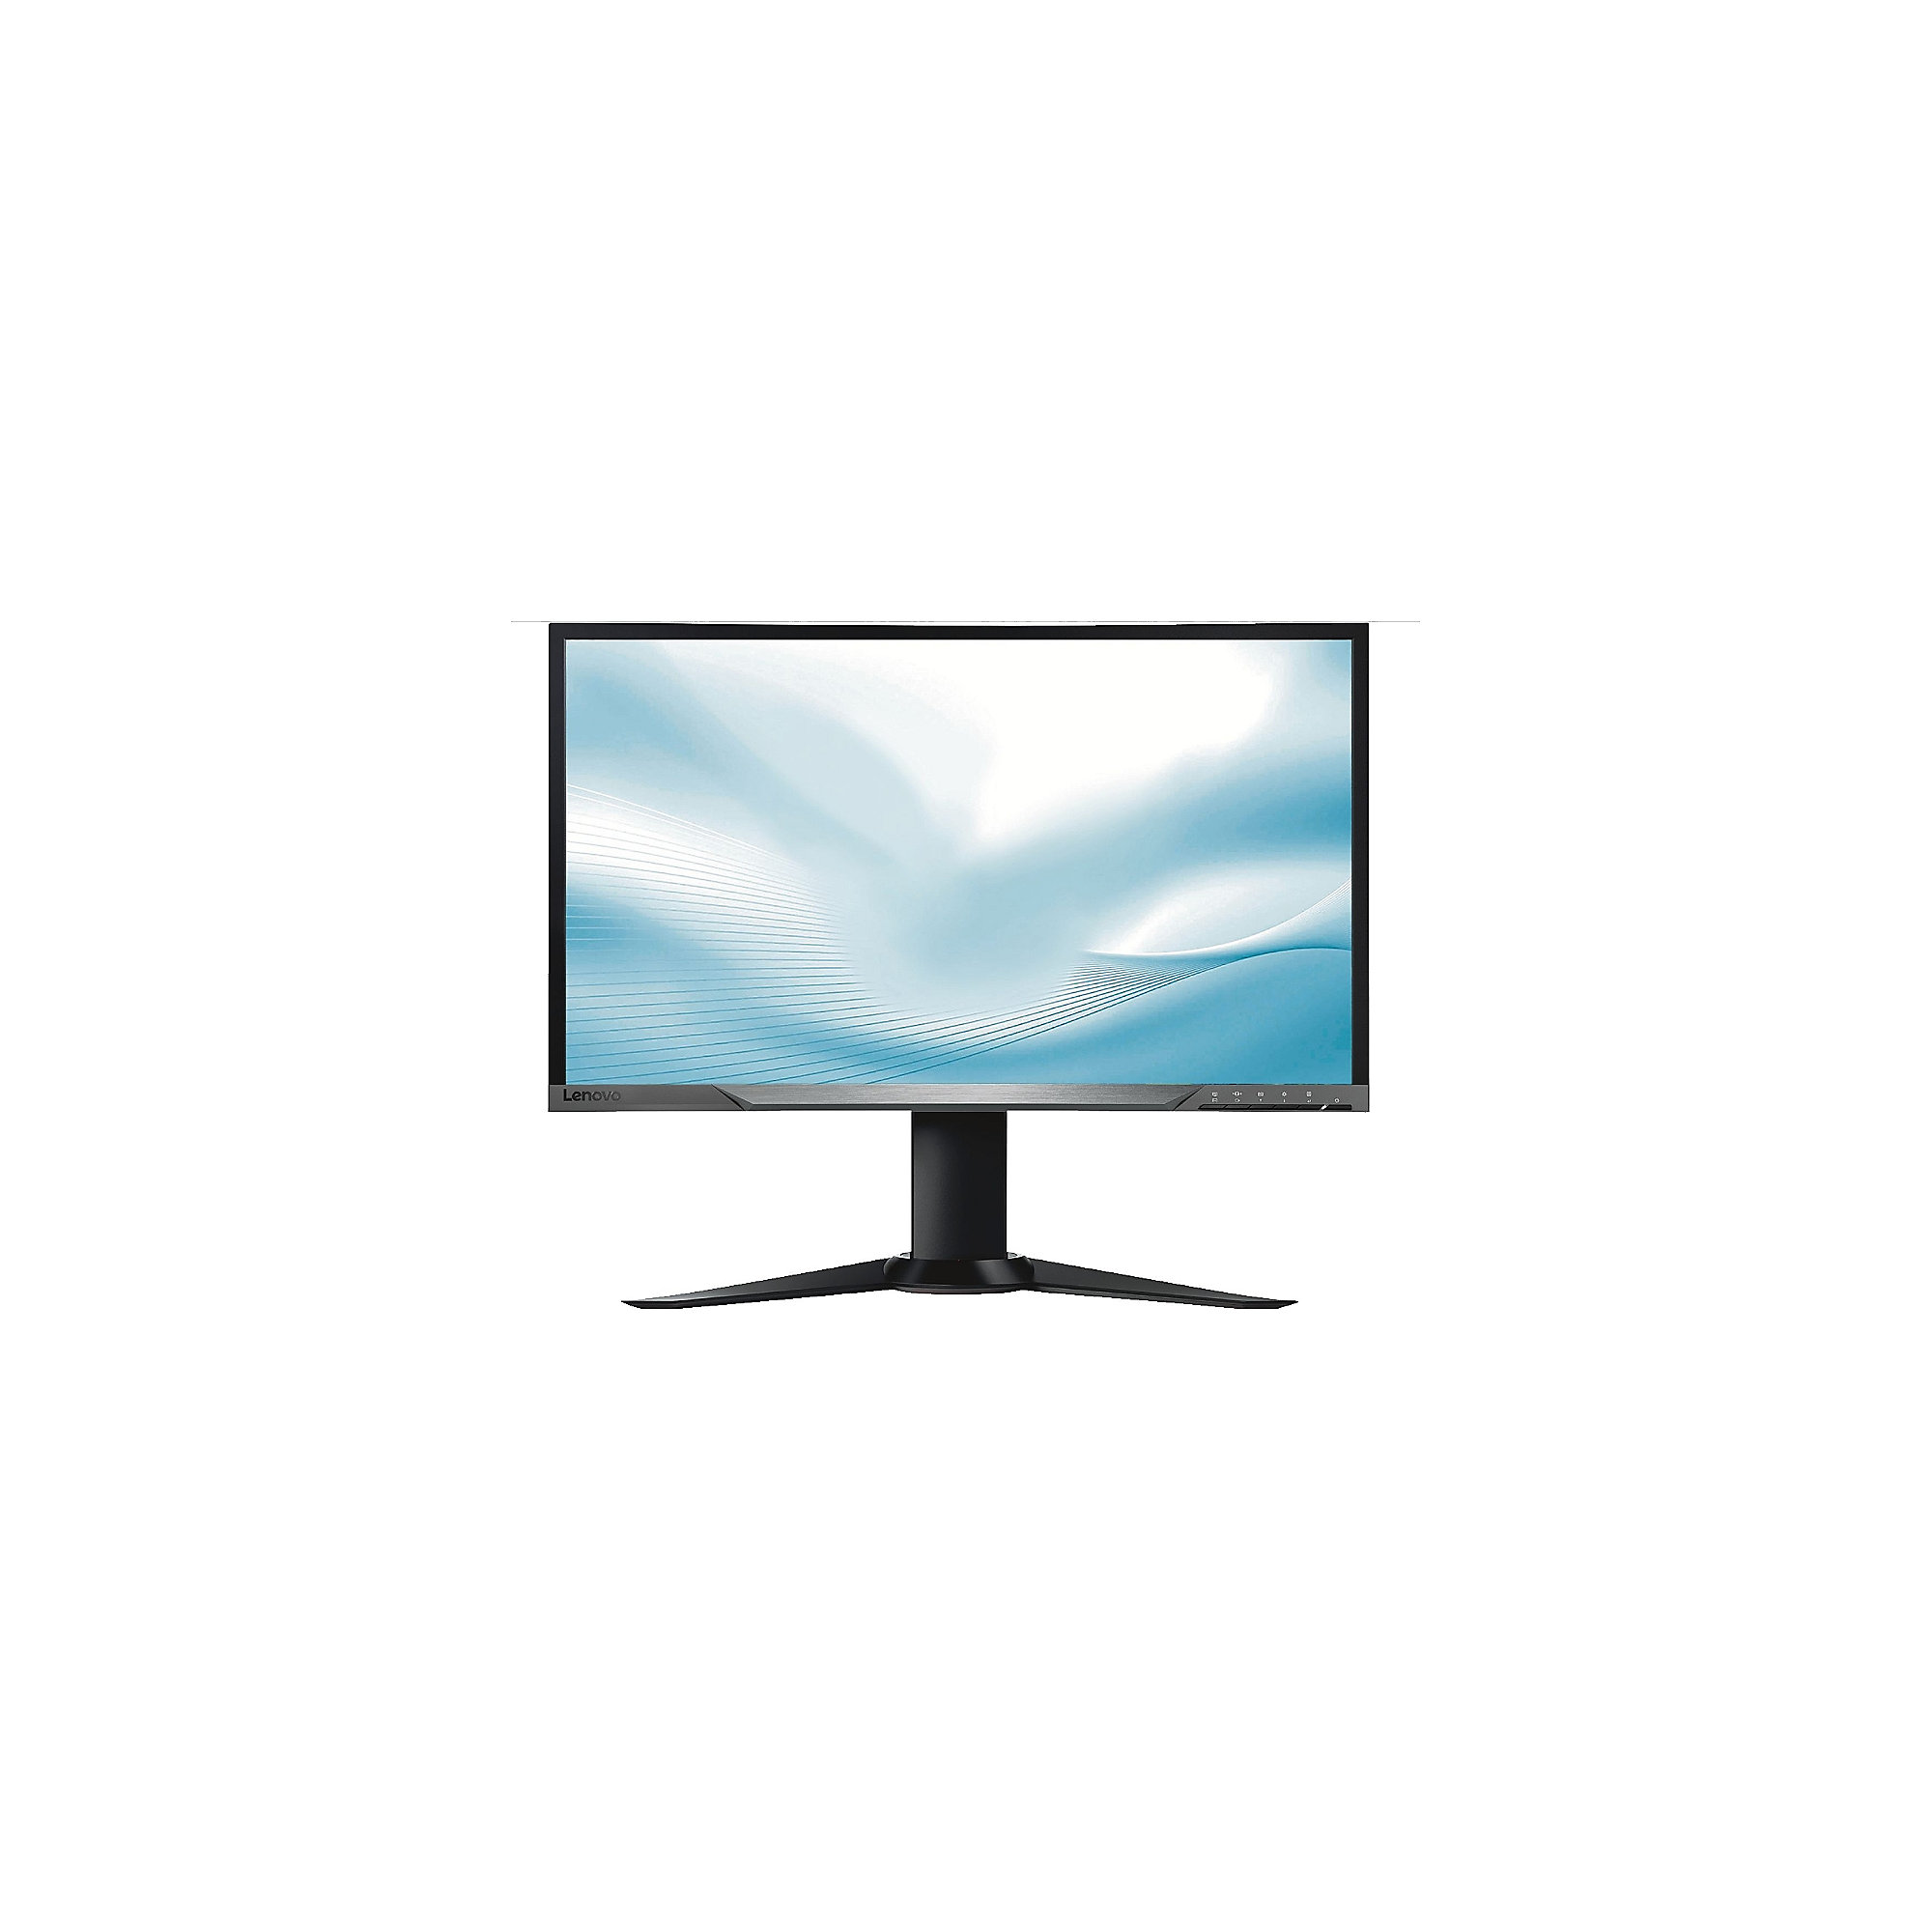 Lenovo ThinkVision Y27f 27 Zoll 16:9 curved TFT HDMI/DP 4ms 1000:1 LED Freesync